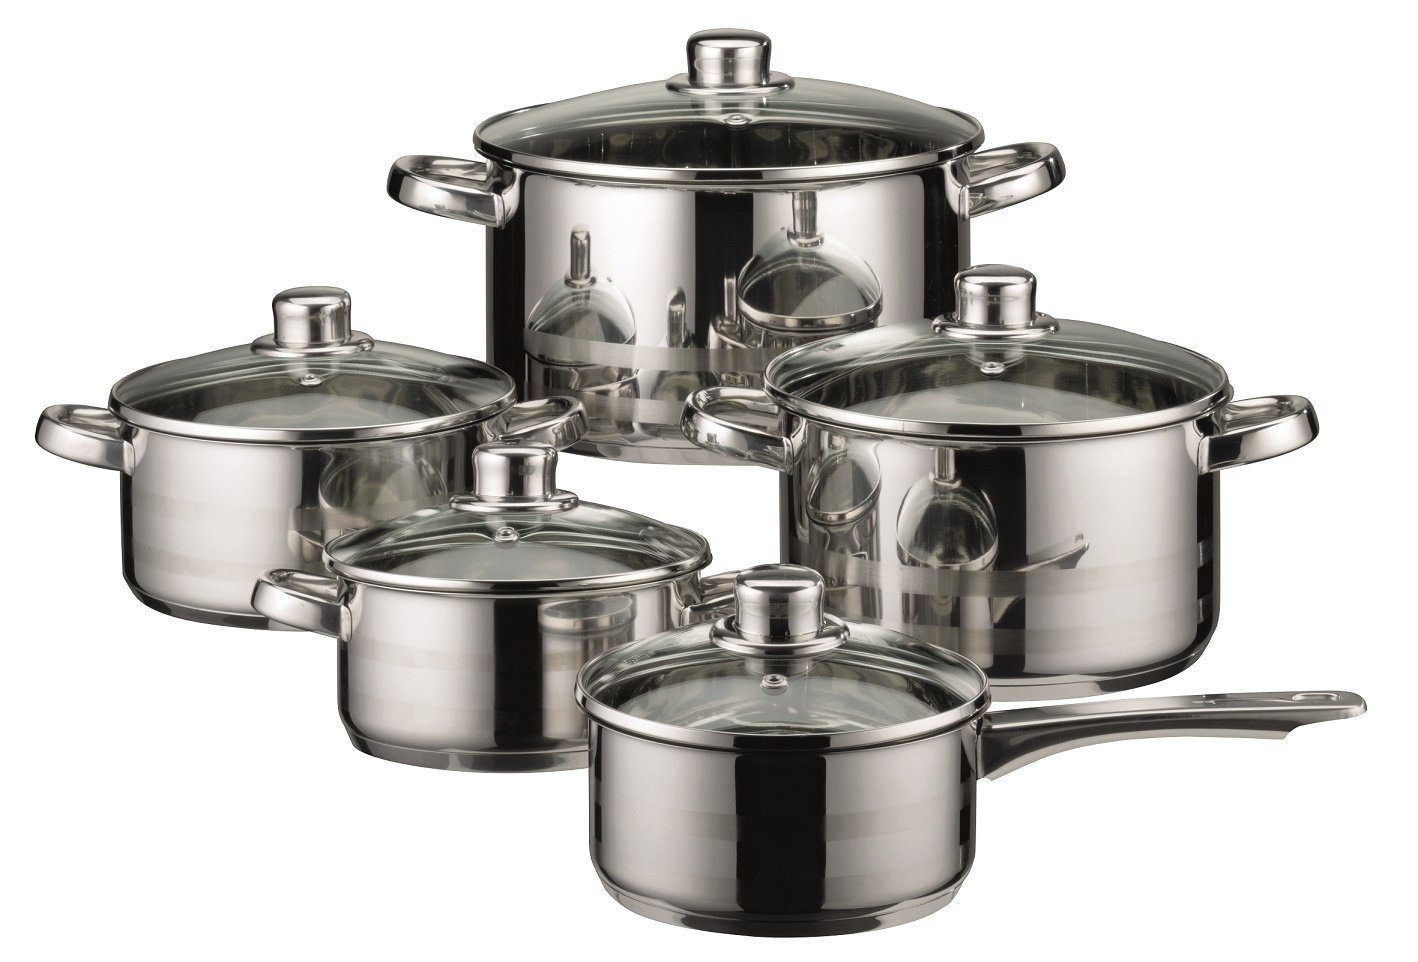 ELO Stainless Induction Cookware Ventilated